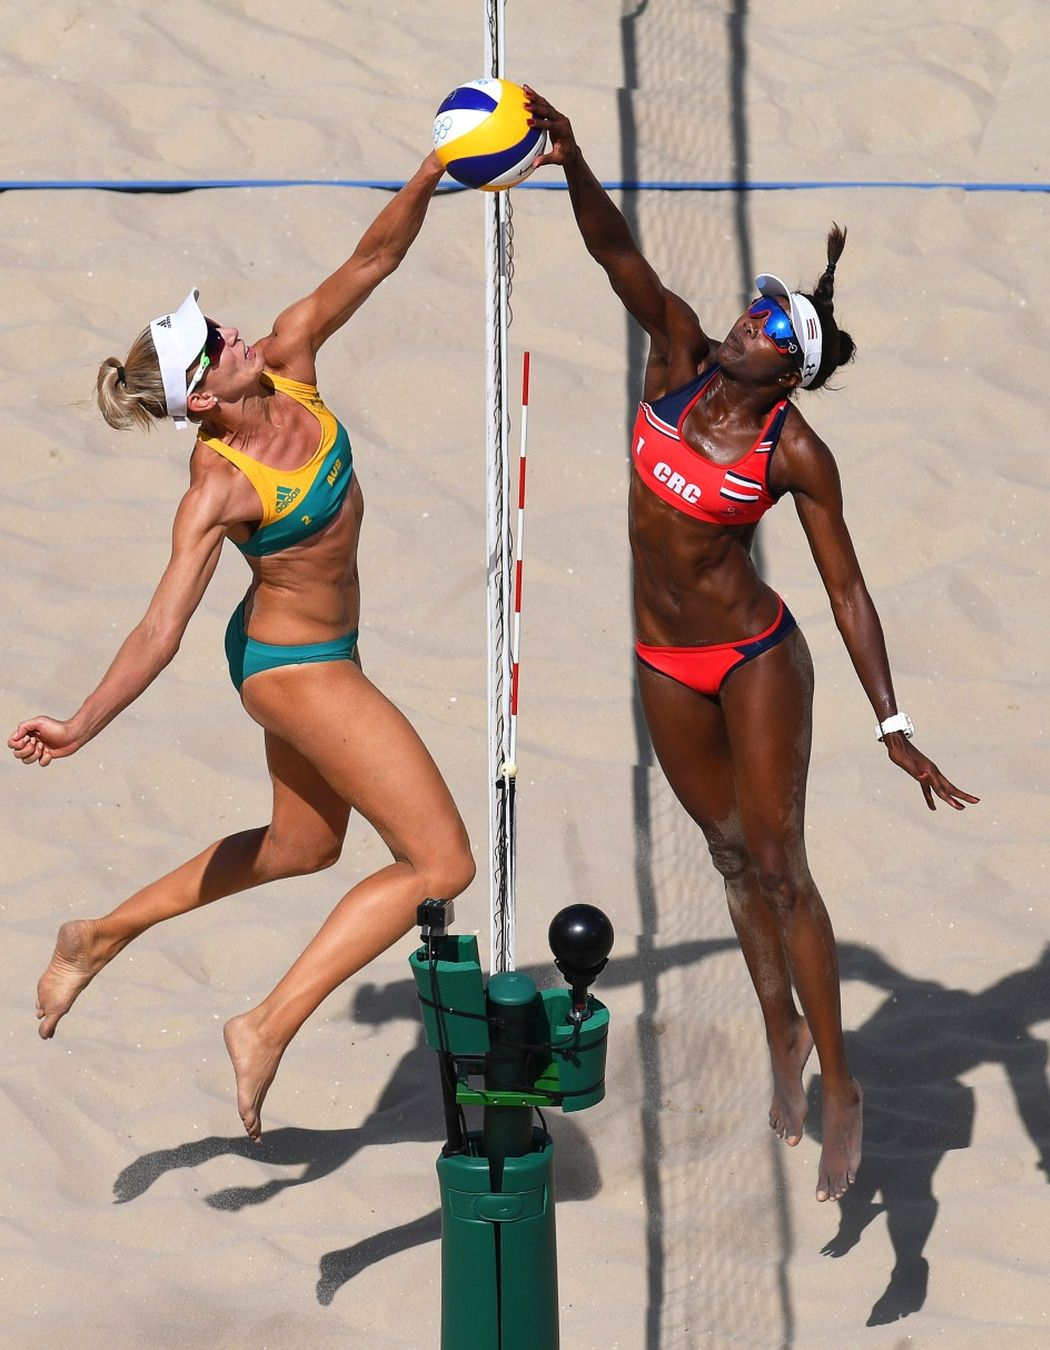 Volleyball Tumblr Beach Volleyball Pictures Beach Volleyball Women Volleyball